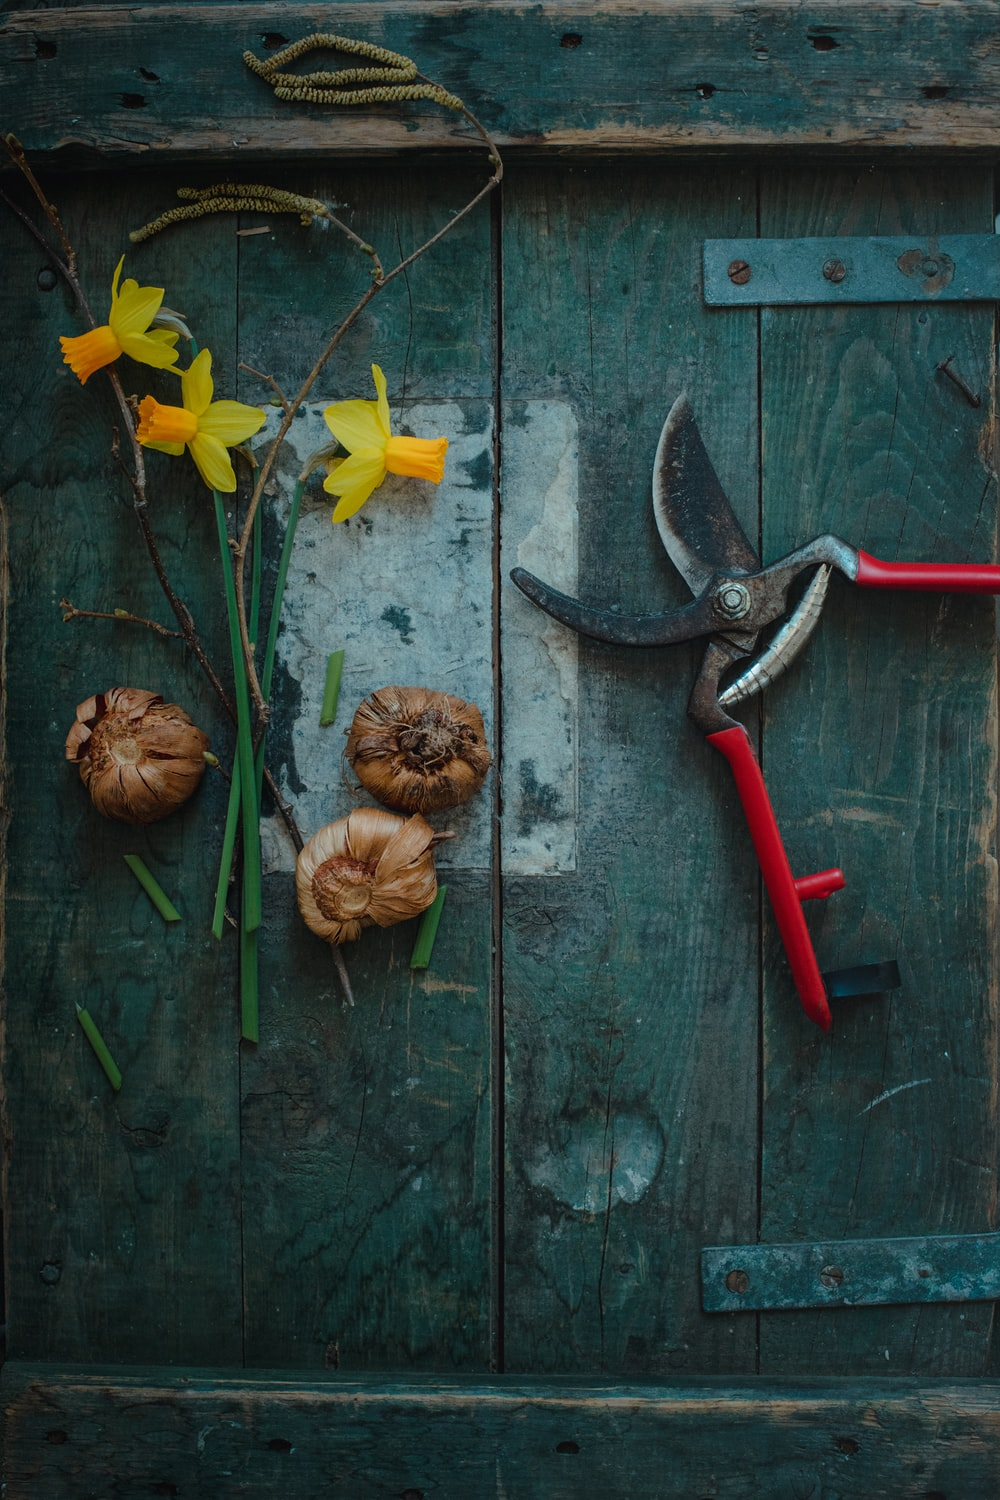 red handle gray and red handle hammer beside brown pine cone and yellow flowers